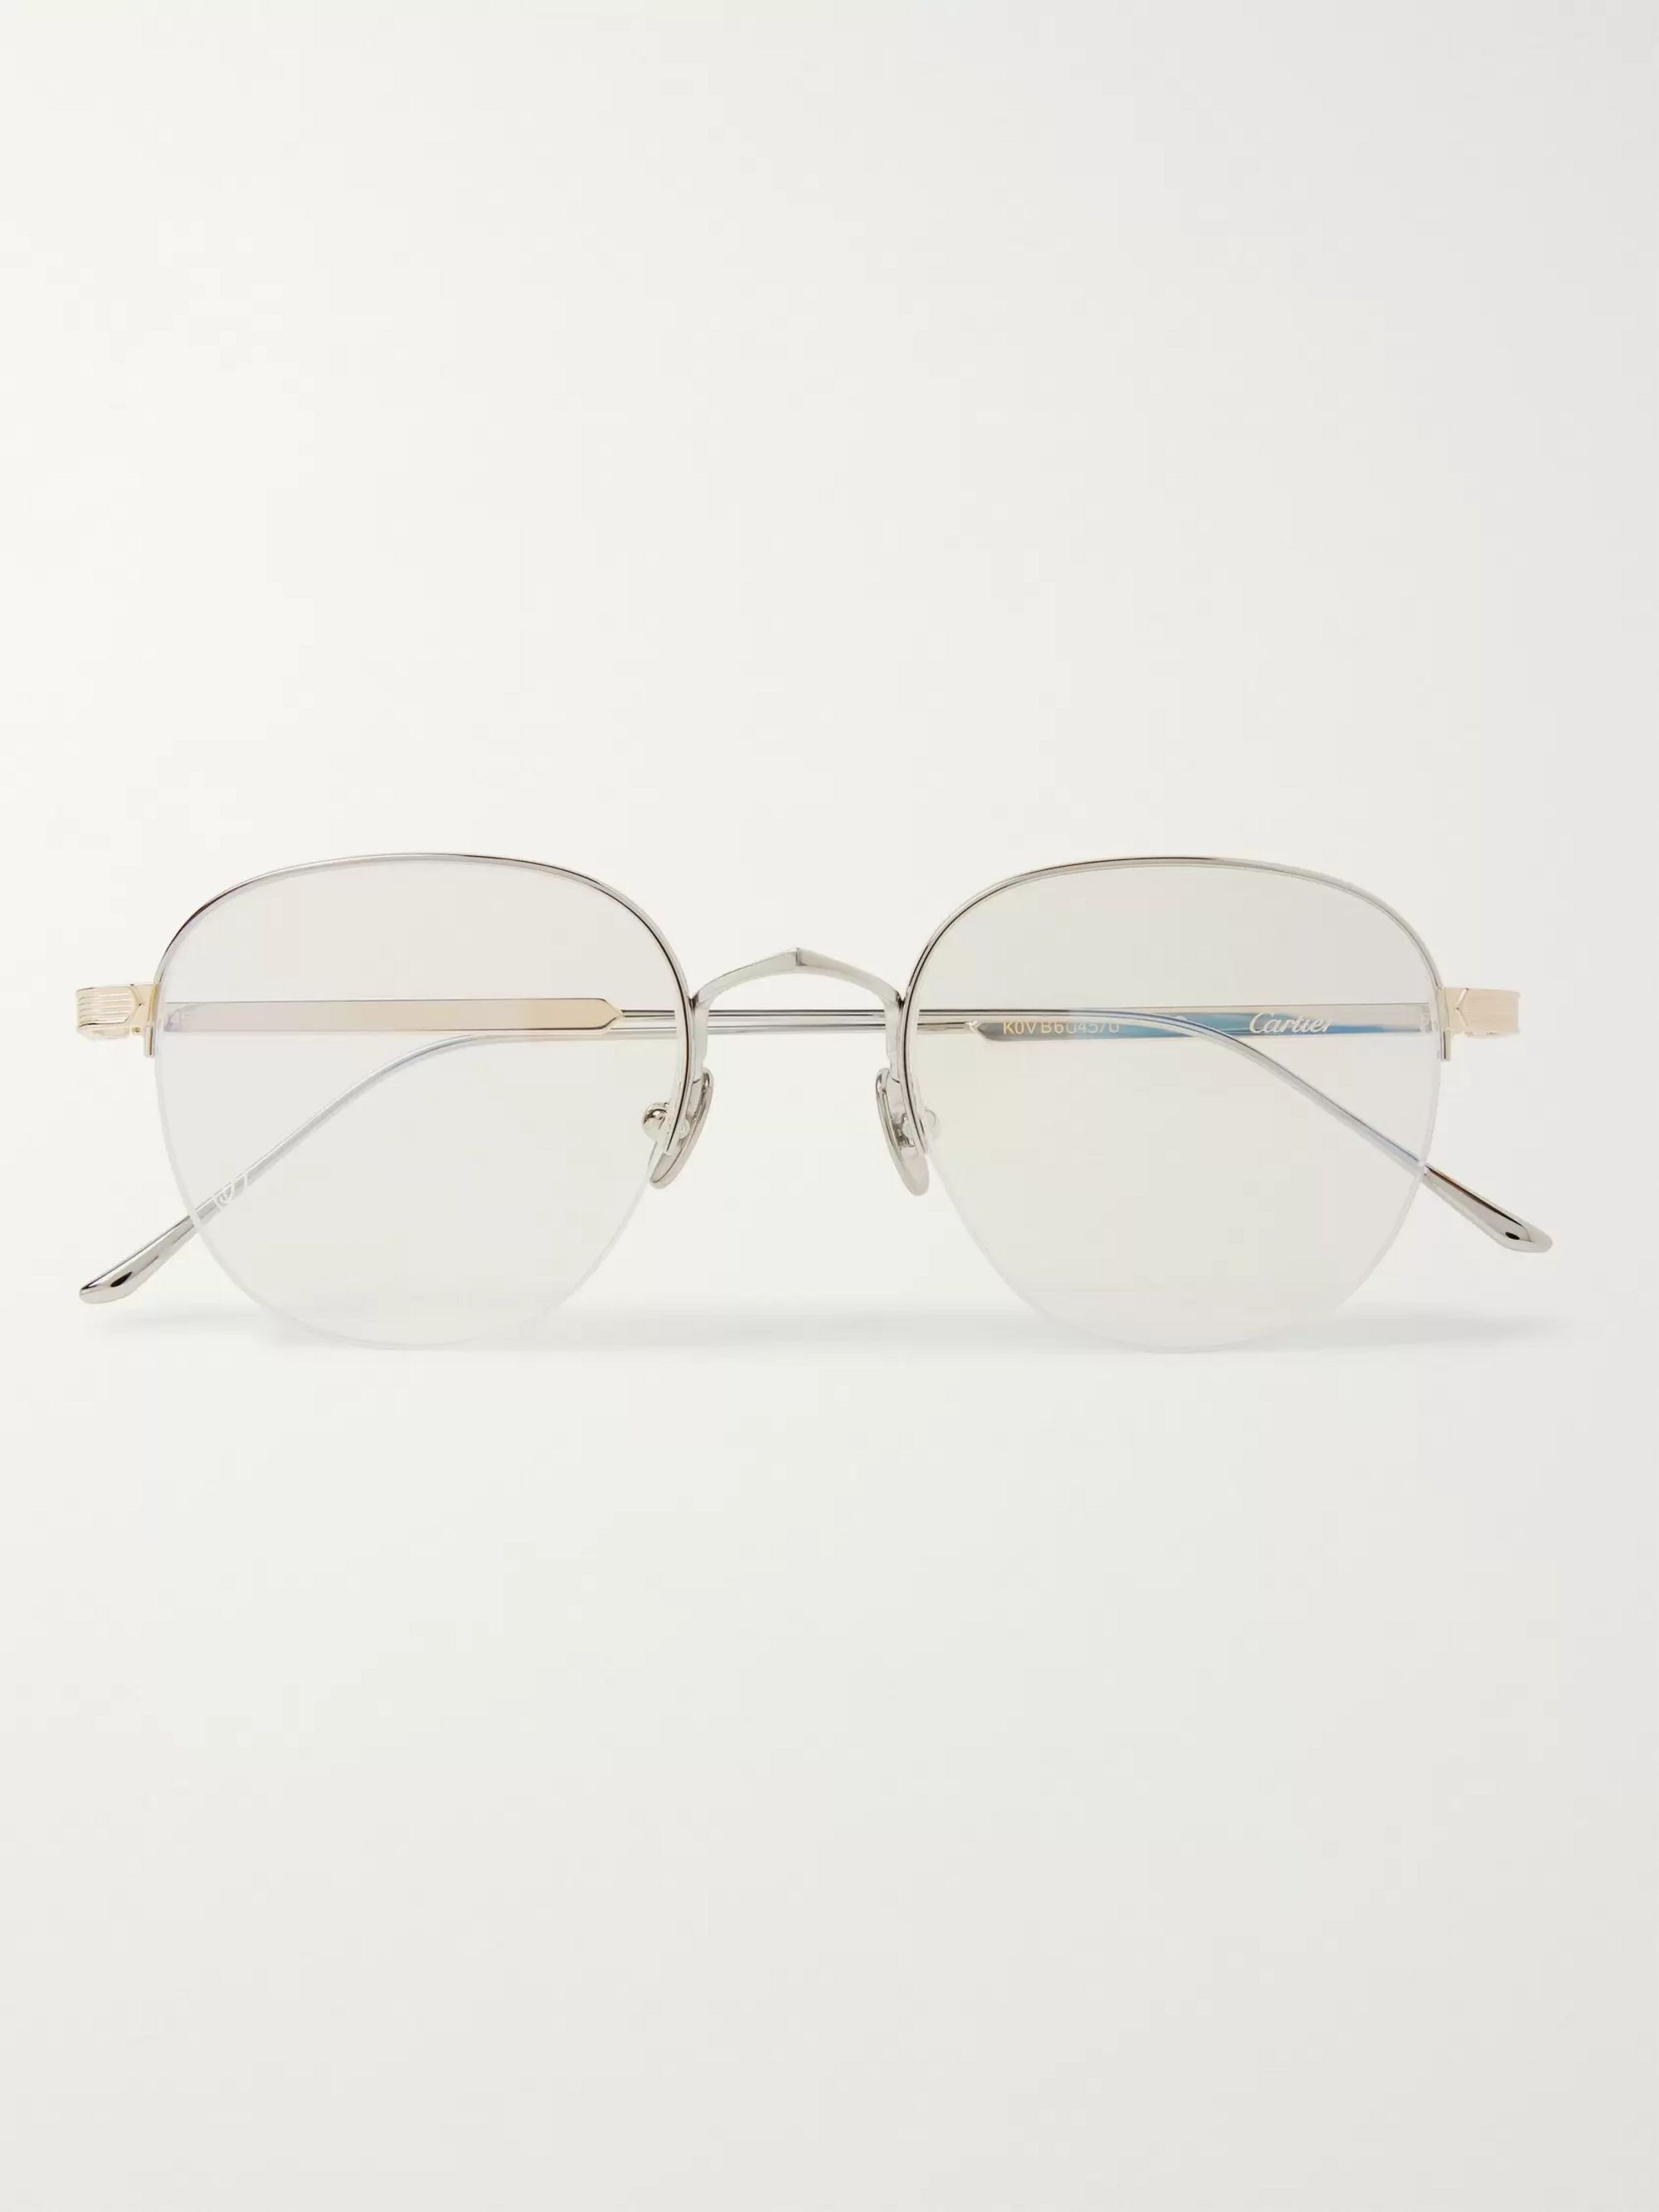 Cartier Eyewear Round-Frame Silver and Gold-Tone Optical Glasses